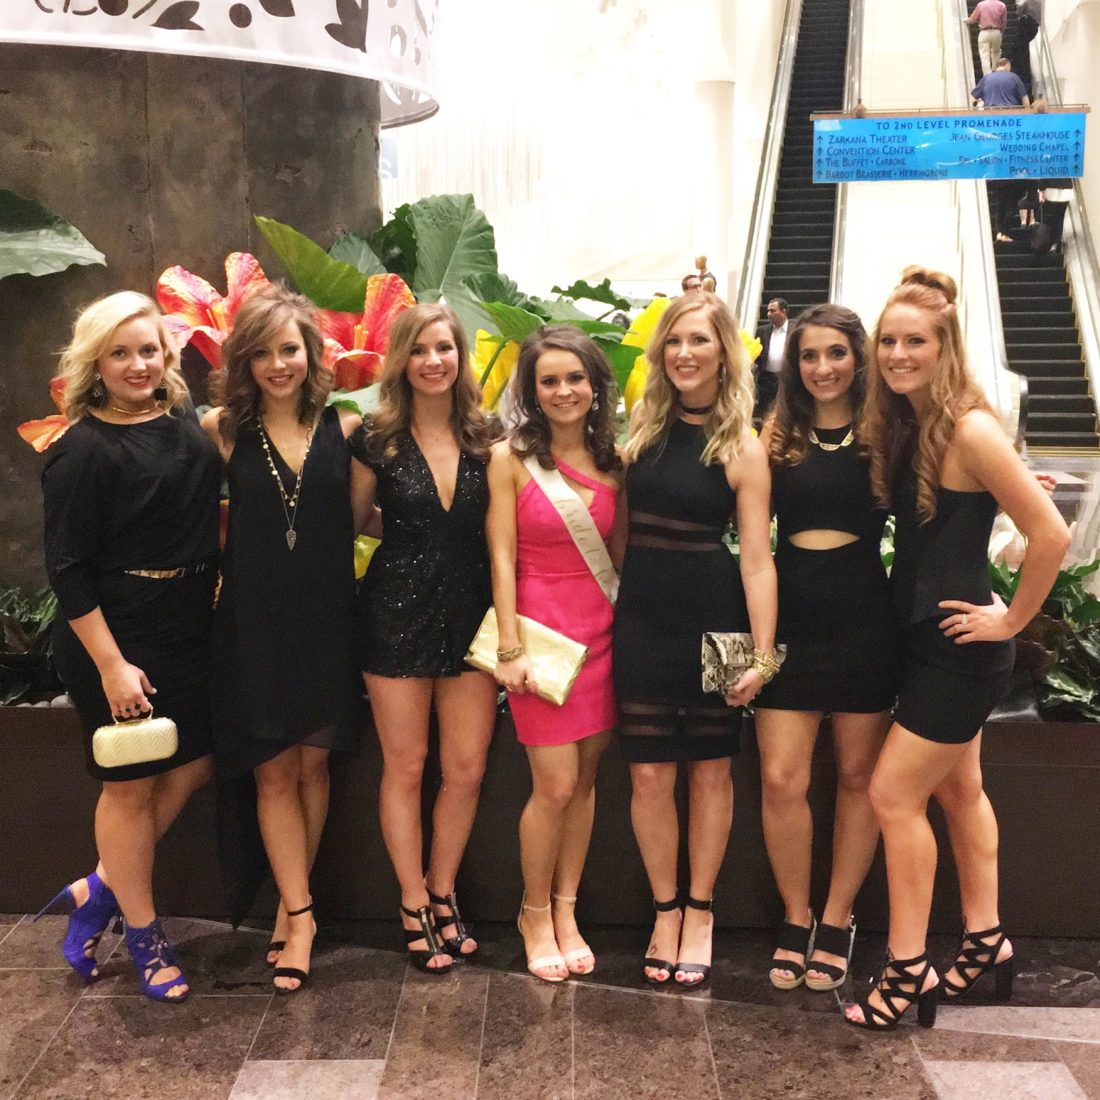 vegas bachelorette party